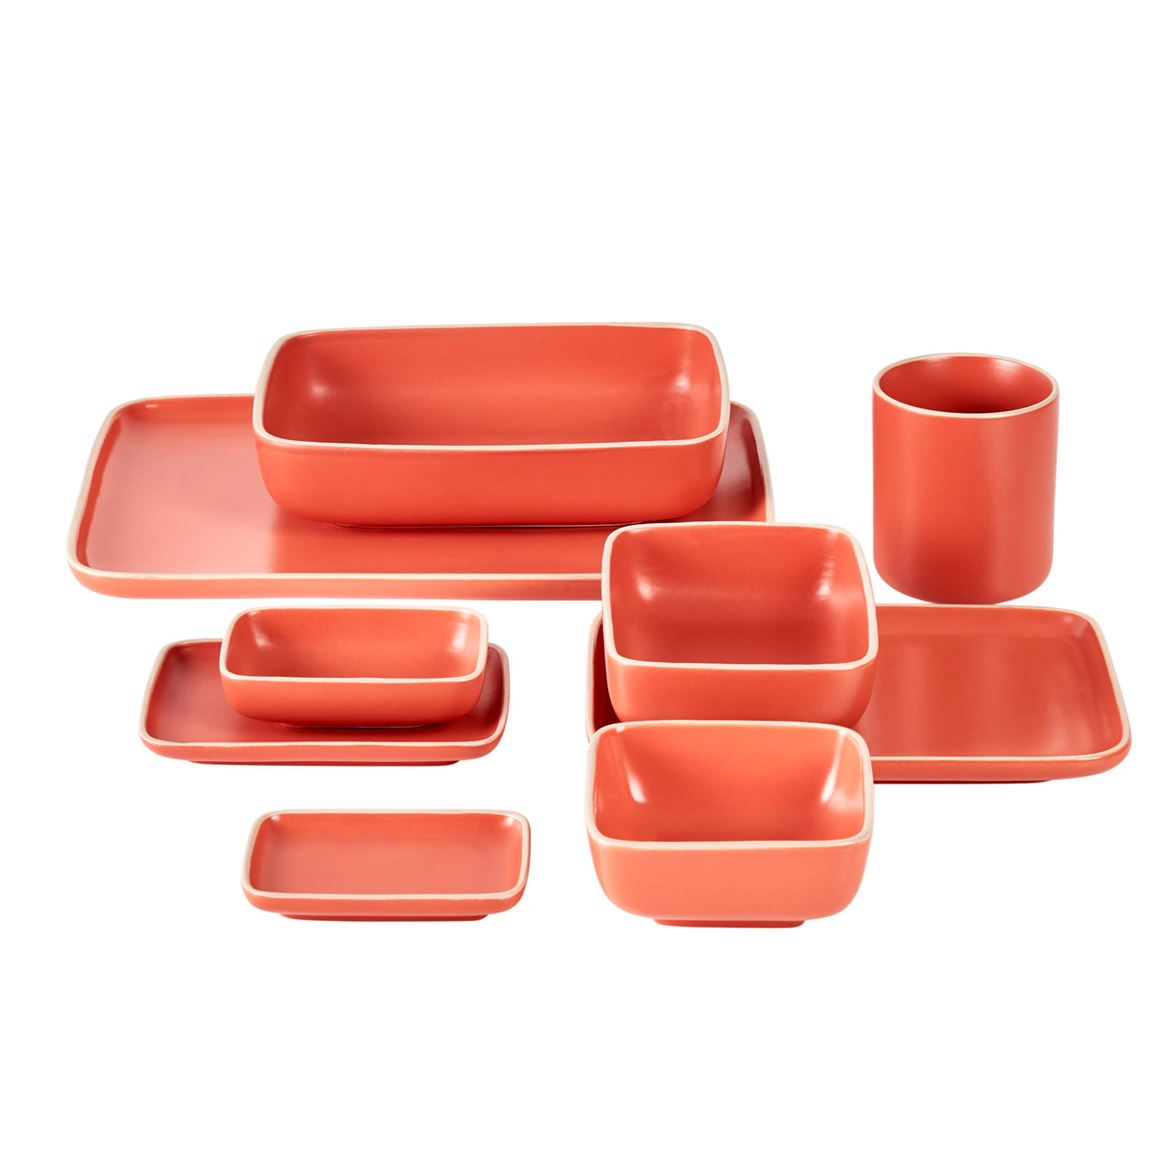 ELEMENTS Bord oranje B 21,5 x L 30 cm_elements-bord-oranje-b-21,5-x-l-30-cm